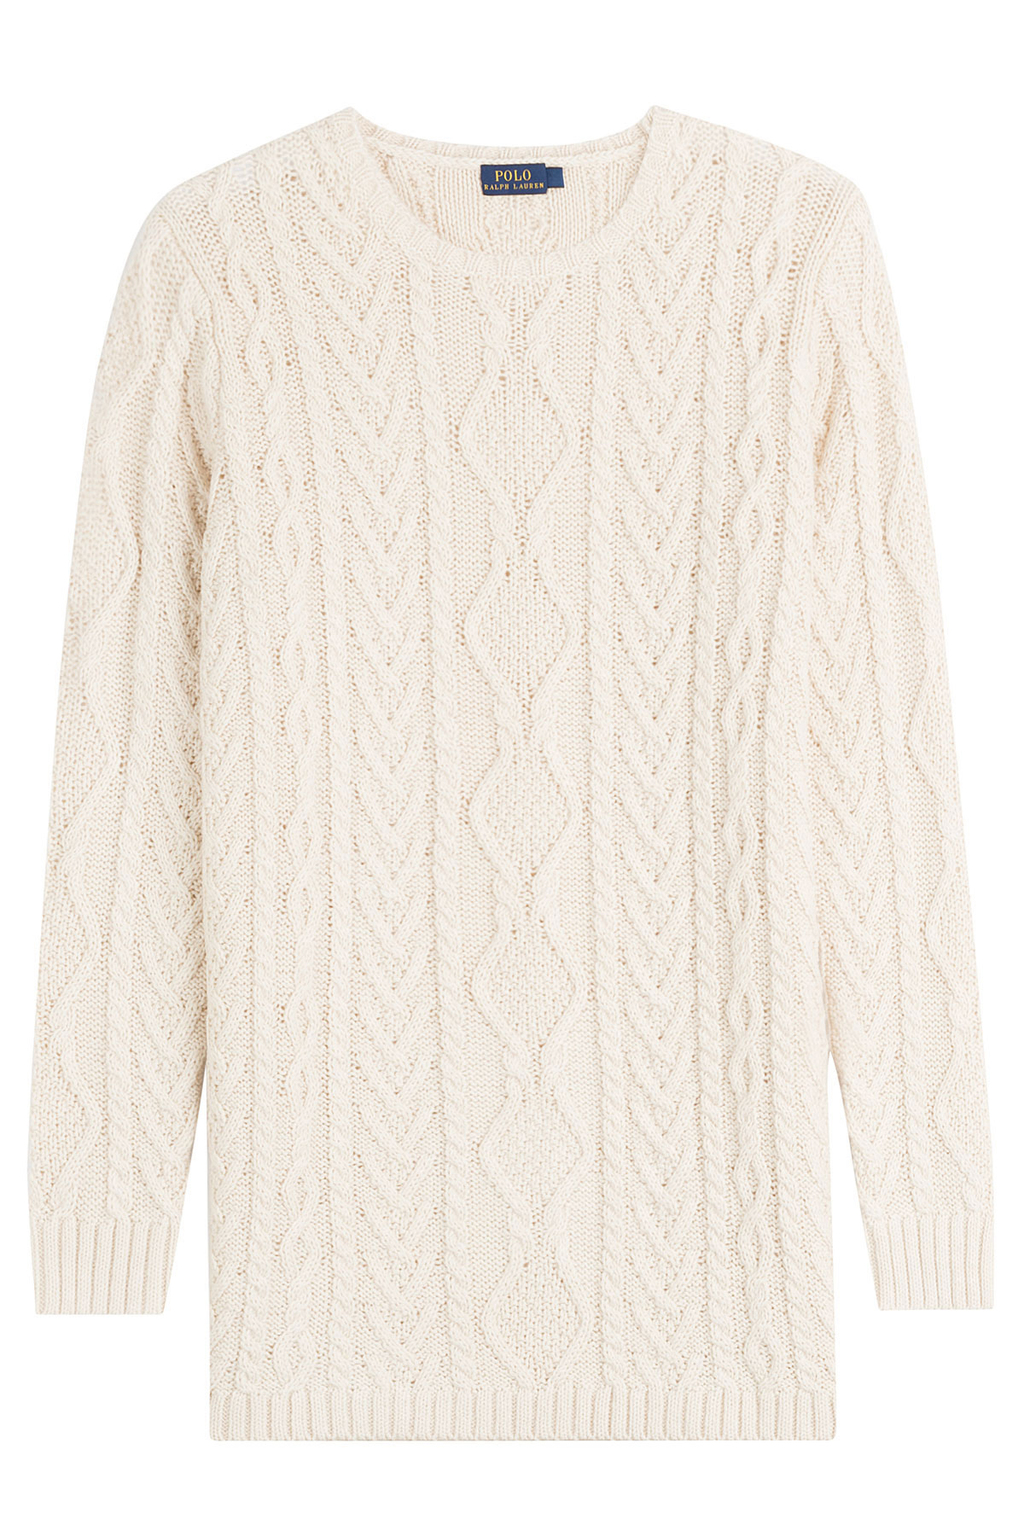 Knit Cotton Pullover - style: standard; pattern: cable knit; predominant colour: white; occasions: casual; length: standard; fibres: cotton - 100%; fit: standard fit; neckline: crew; sleeve length: long sleeve; sleeve style: standard; texture group: knits/crochet; pattern type: knitted - other; season: a/w 2016; wardrobe: highlight